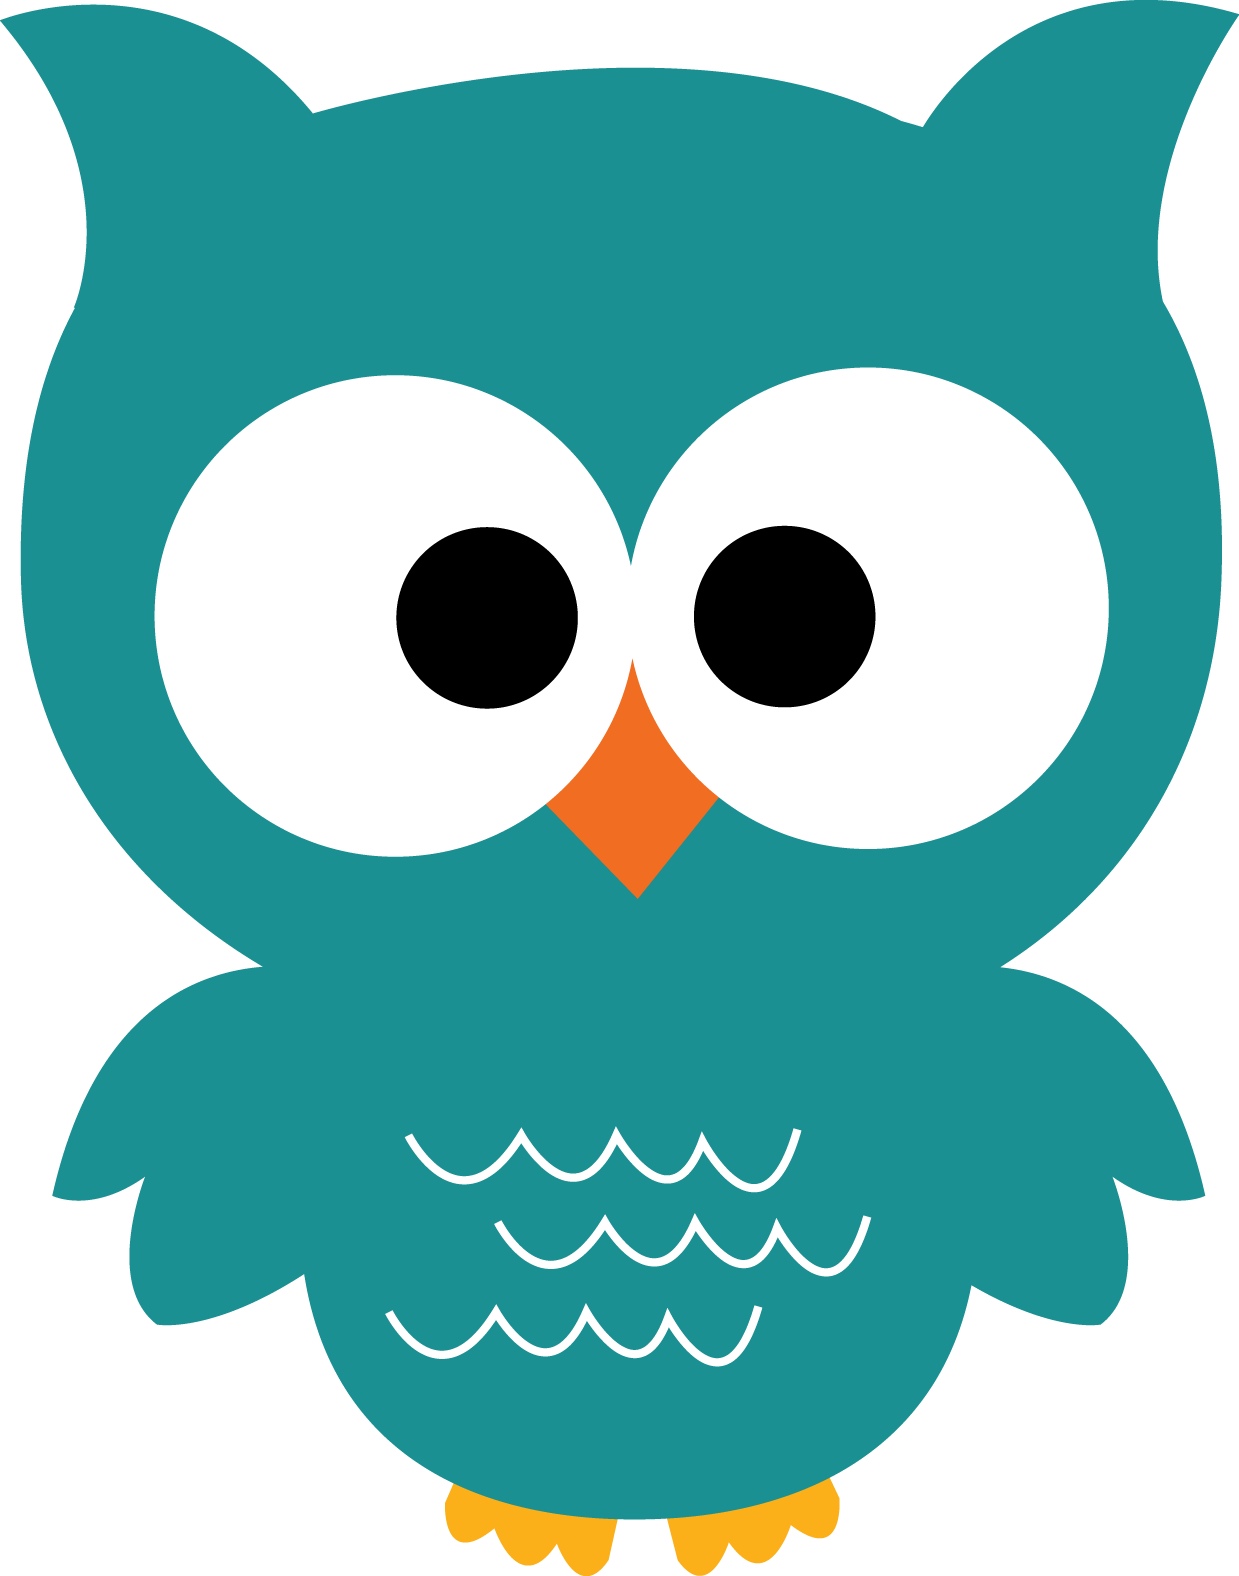 Owls clipart boy, Owls boy Transparent FREE for download on.